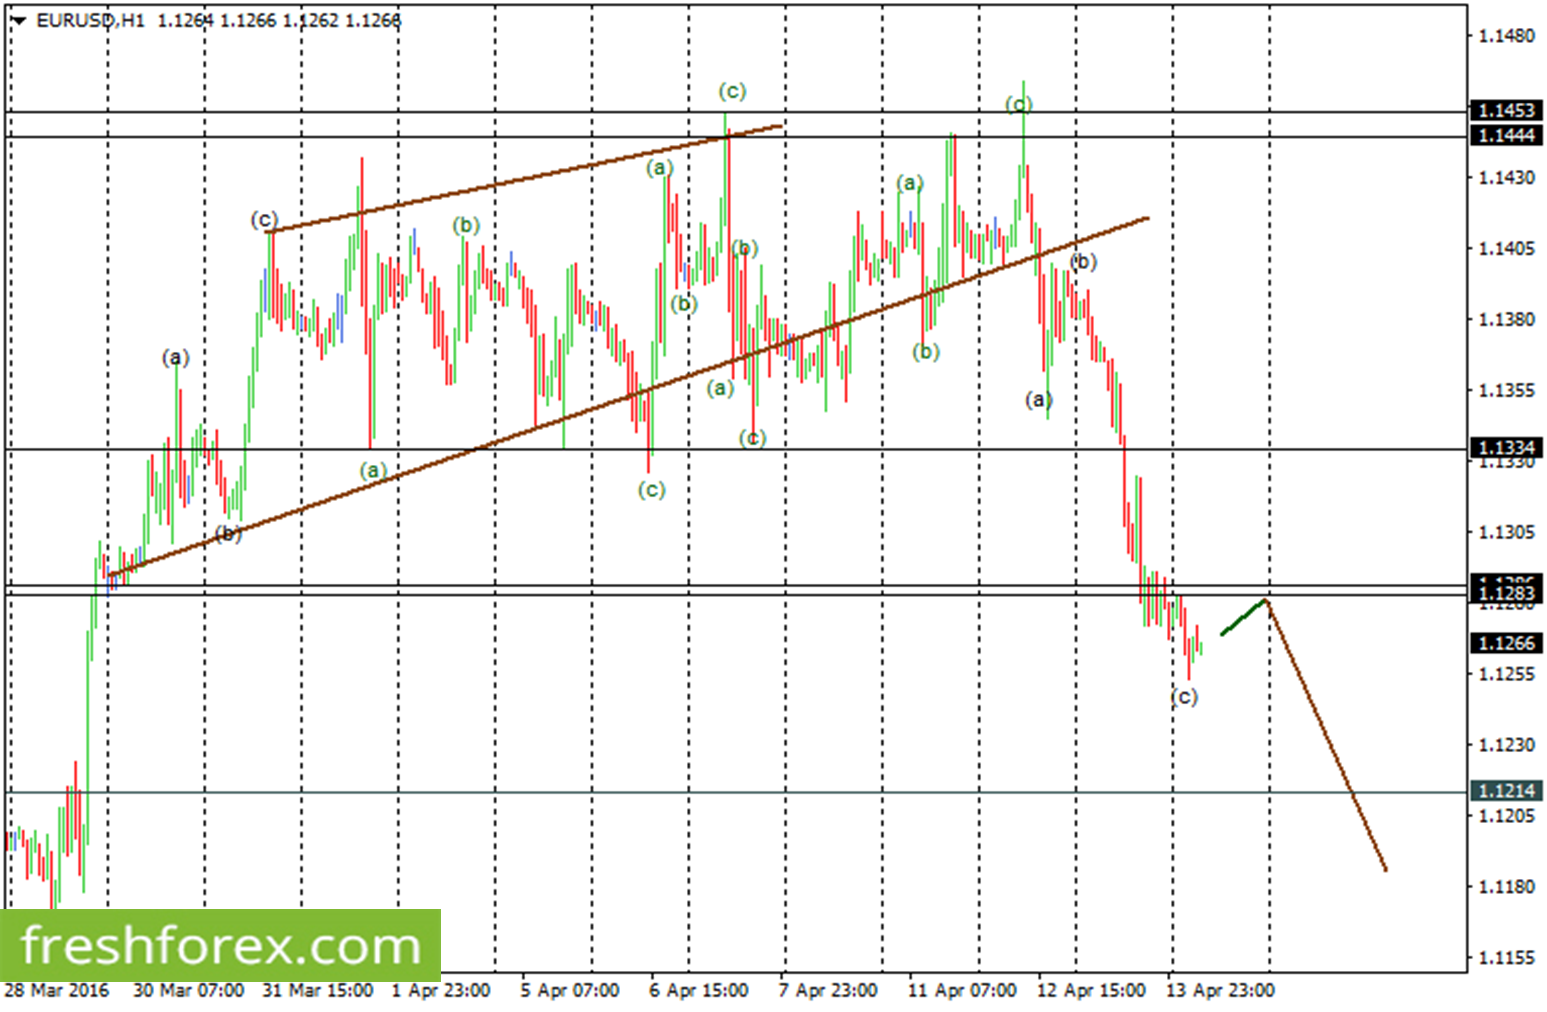 EURUSD Elliot Waves Analysis For 14 April 2016